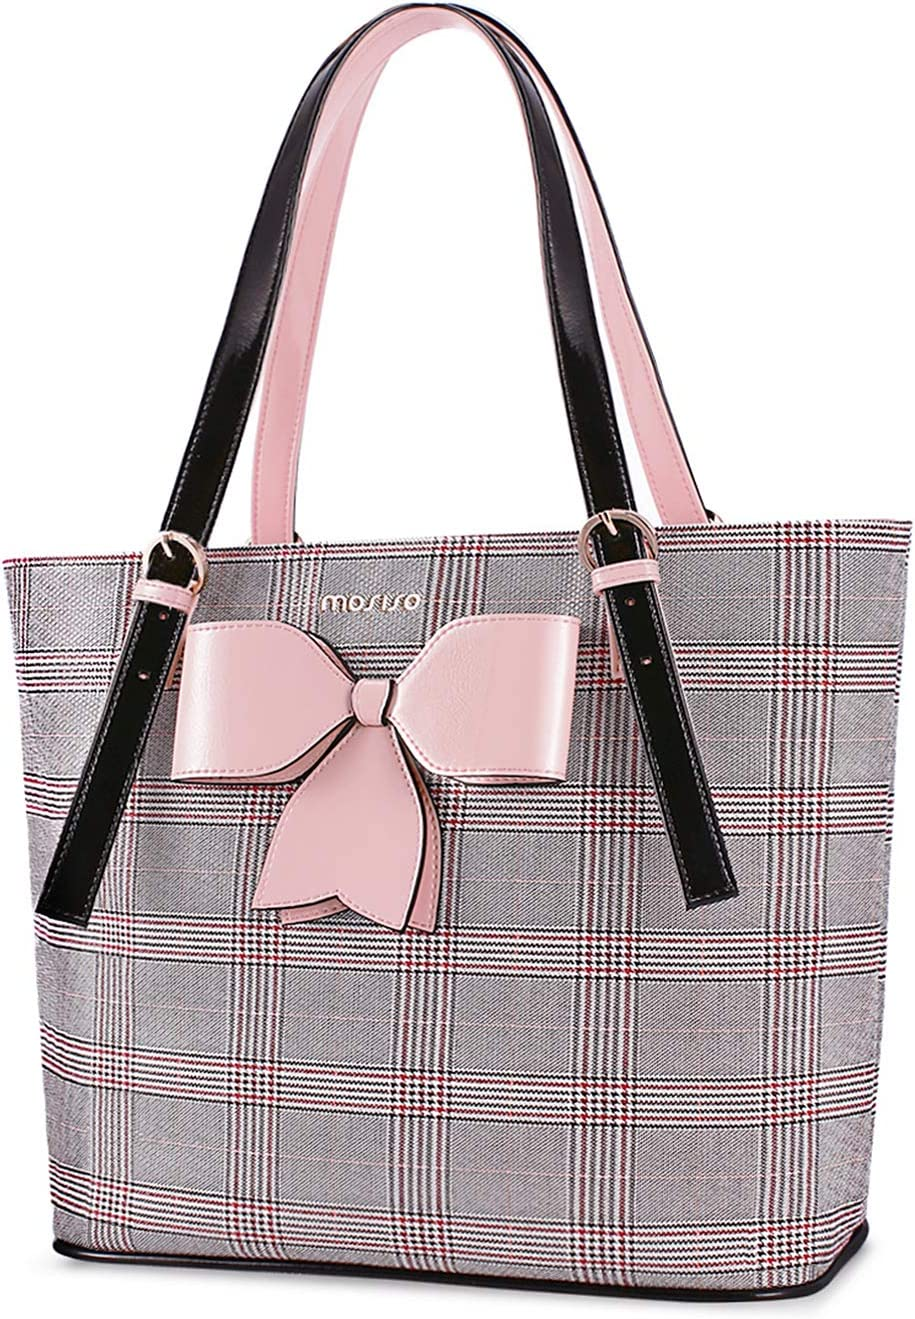 MOSISO Laptop Bag for Women, 15.6 inch Laptop Tote Bag Compatible with MacBook Pro 16 inch A2141 & Notebook, PU Leather Grid Large Capacity Work Business Travel Briefcase Handbag with Bowknot, Pink